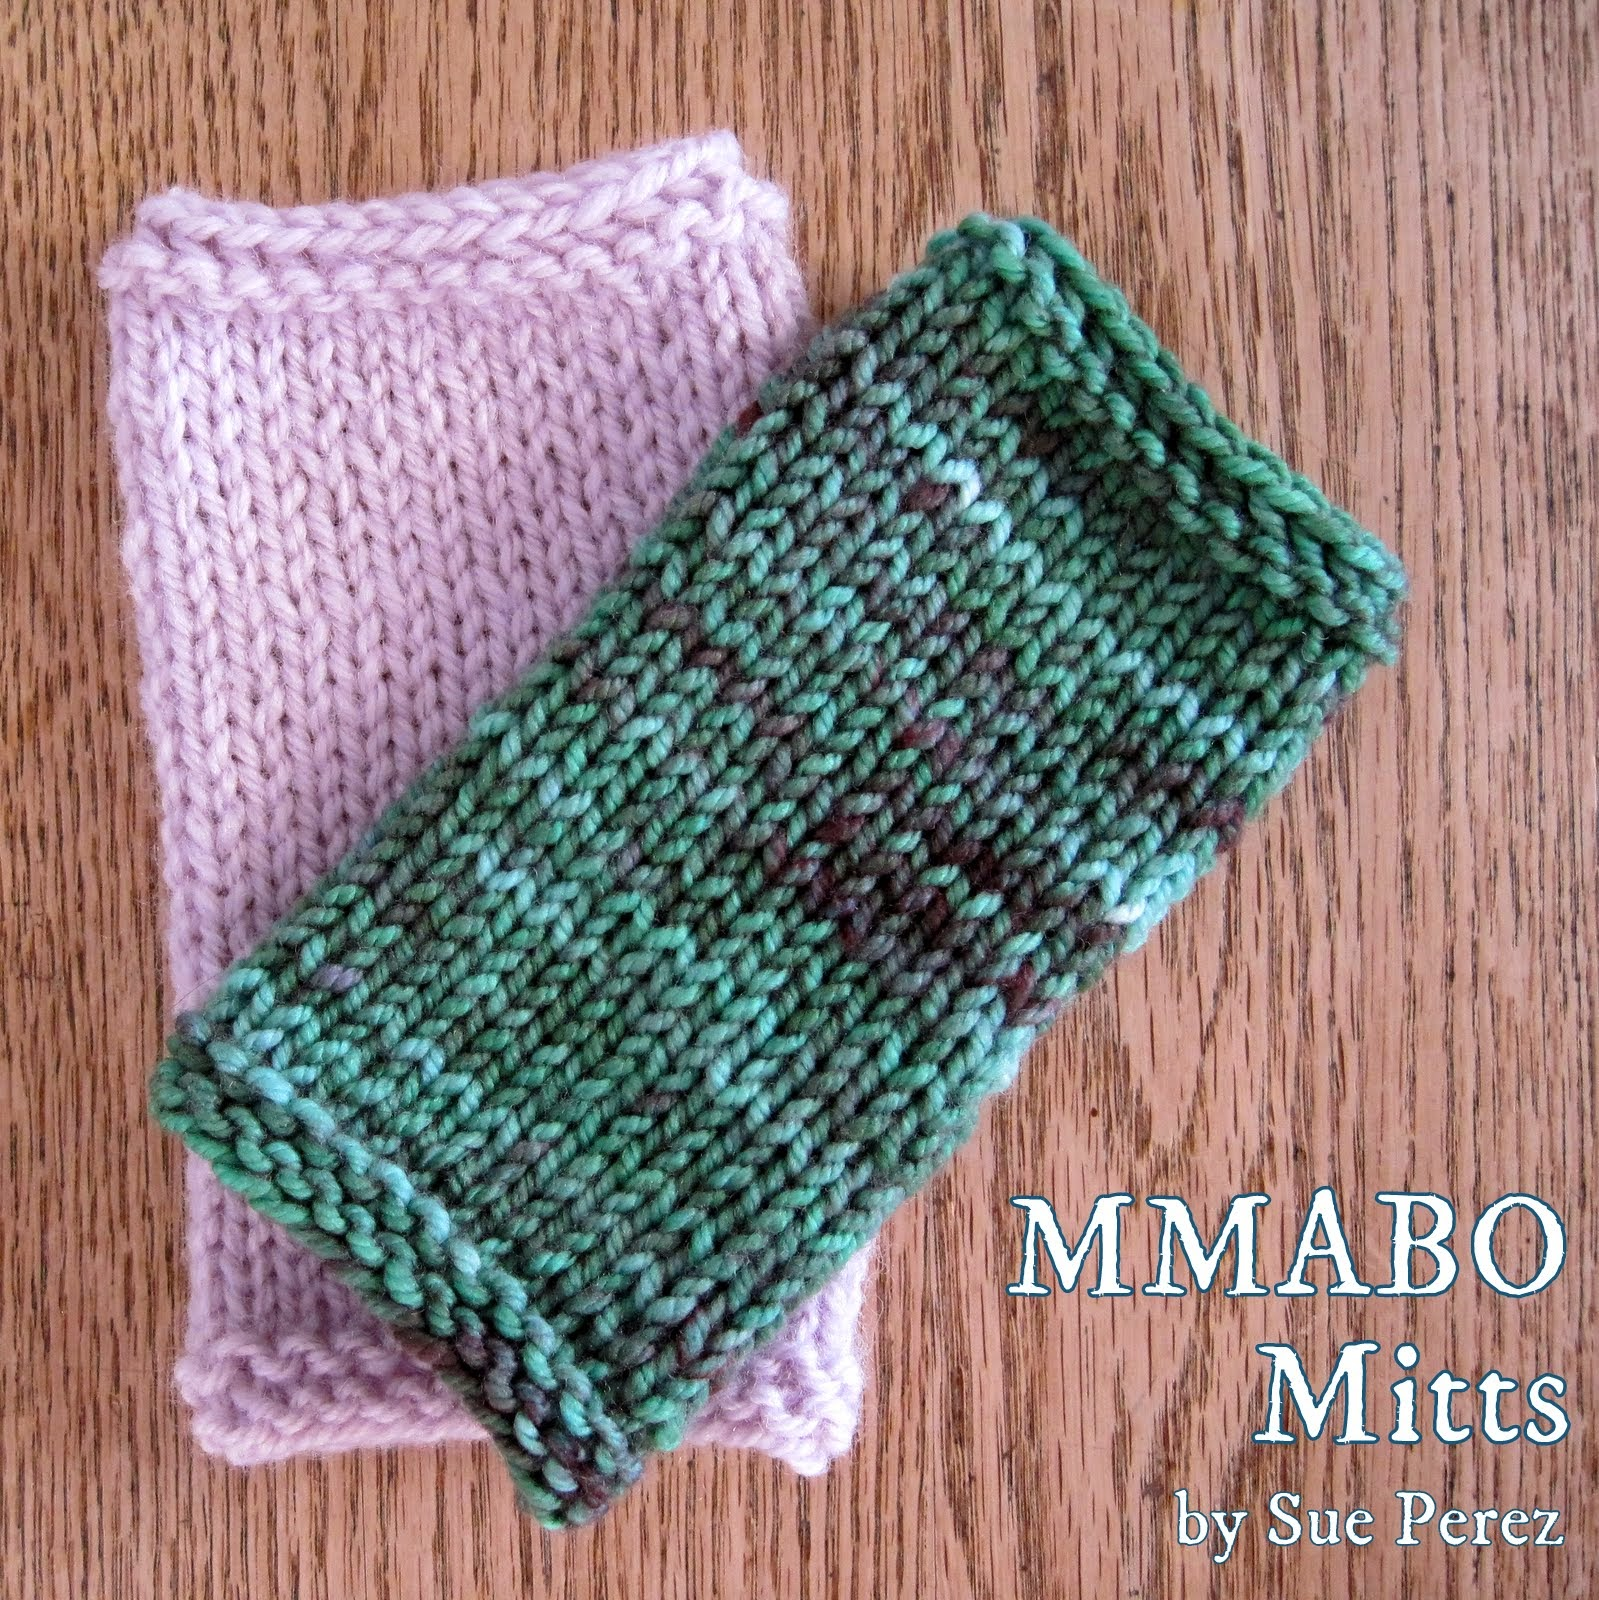 Mr. Micawber's Recipe For Happiness: MMABO Mitt